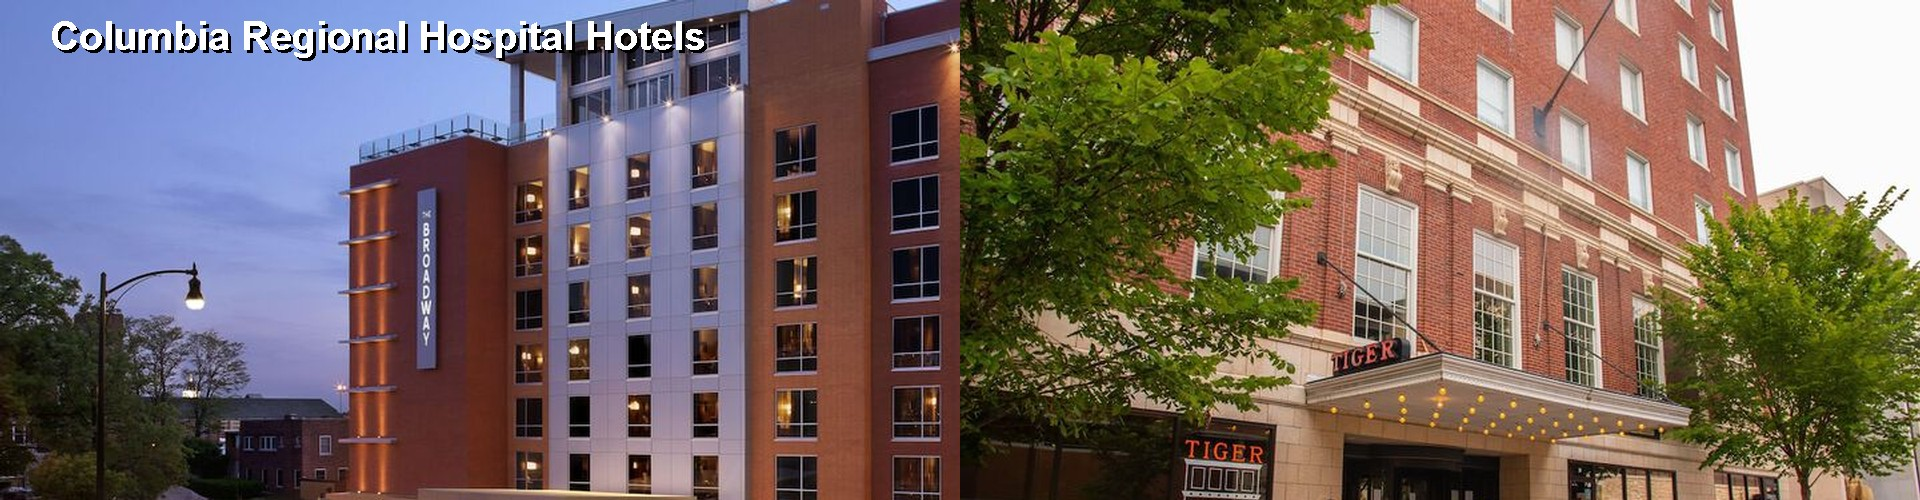 5 Best Hotels near Columbia Regional Hospital